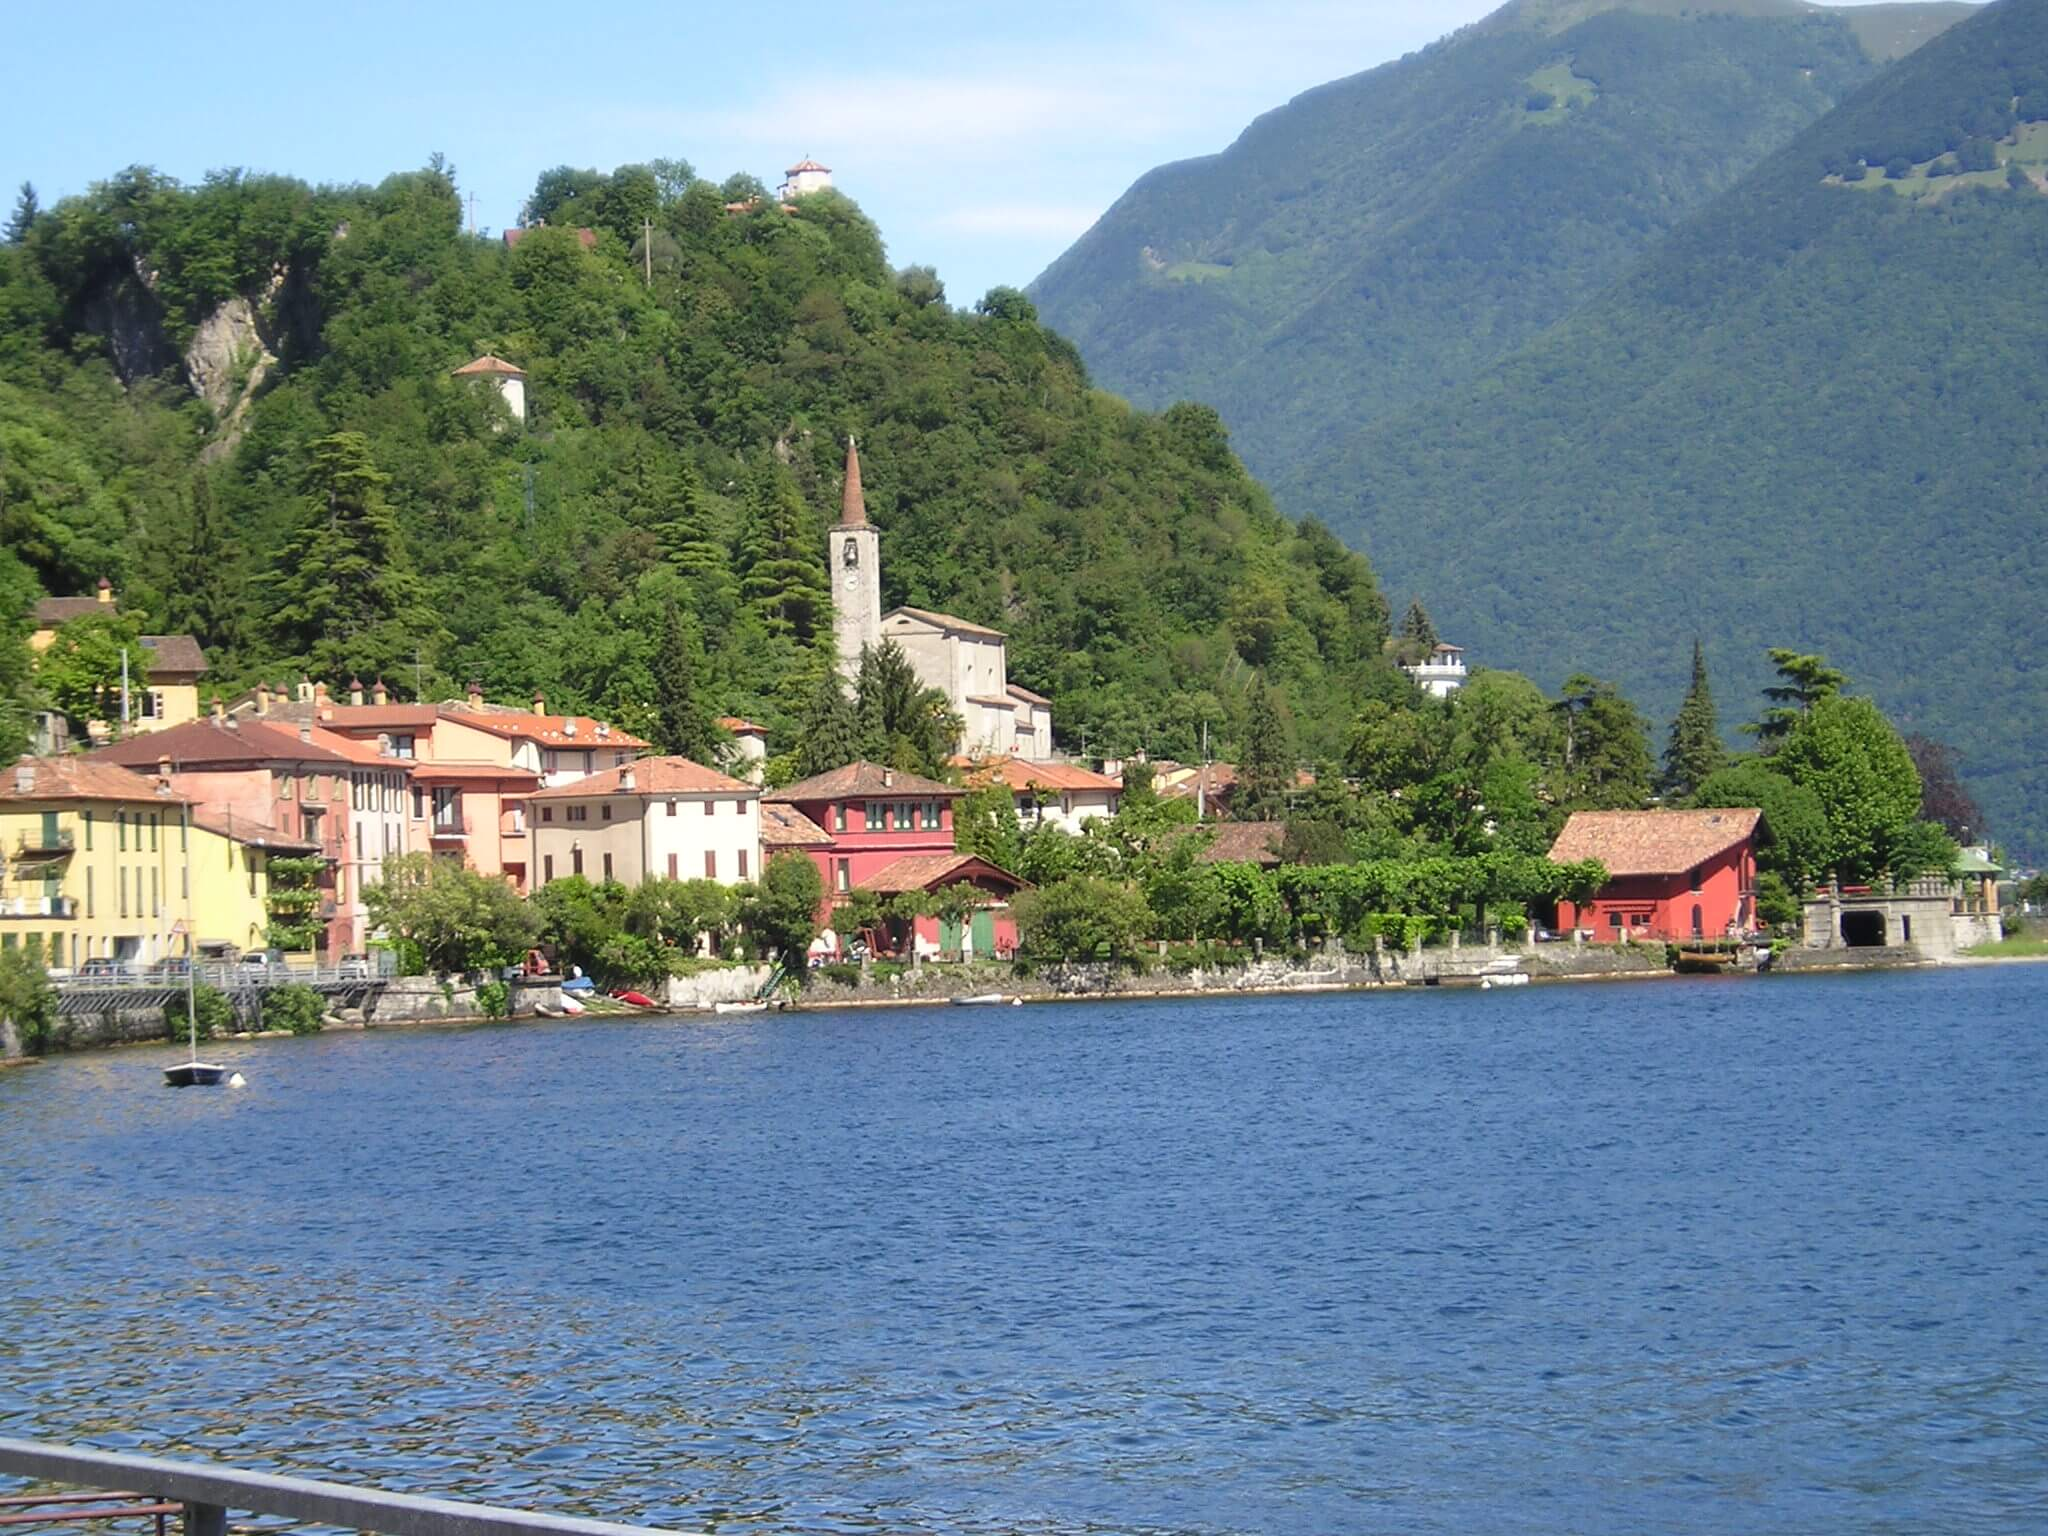 Case vacanze in affitto a Valsolda